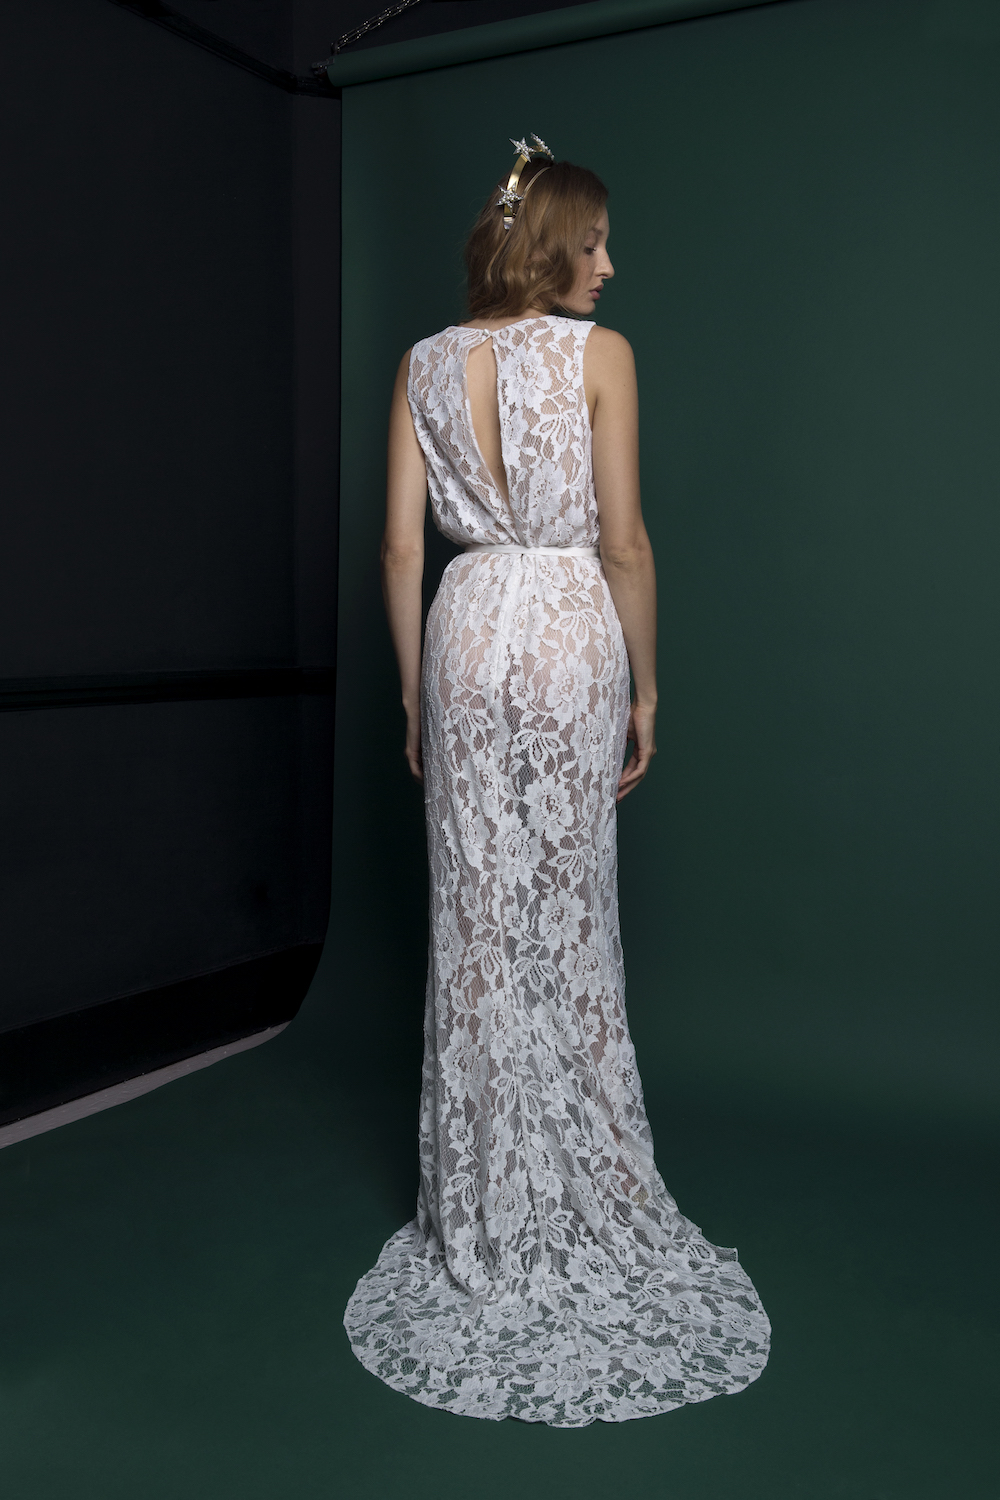 ANCHOR DRESS | WEDDING DRESS BY HALFPENNY LONDON